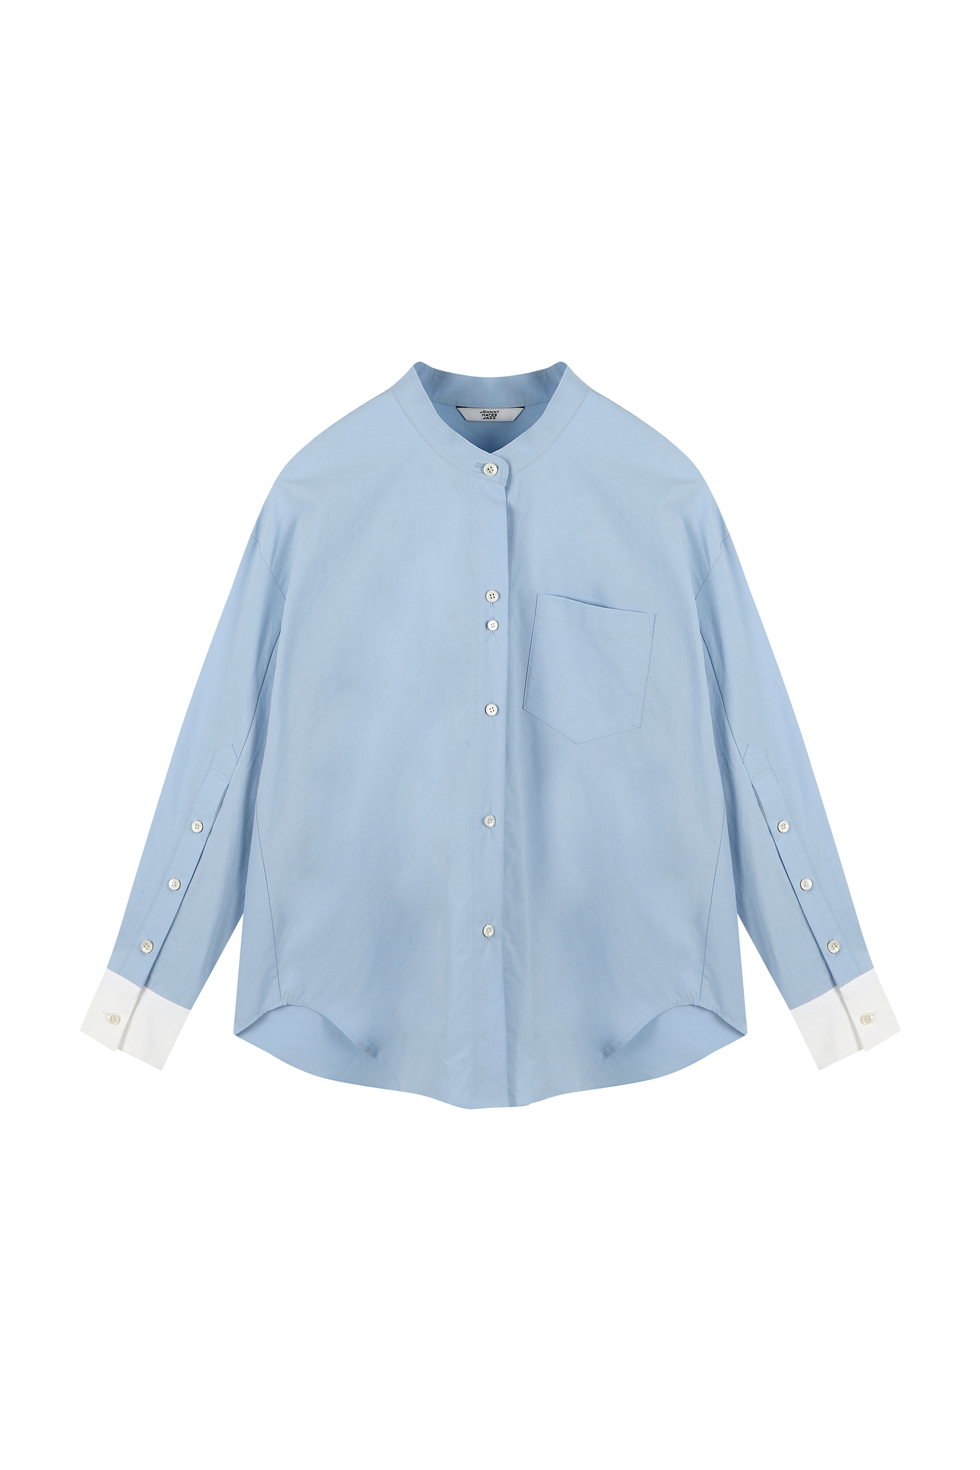 OVERSIZED COTTON SHIRTS - BLUE